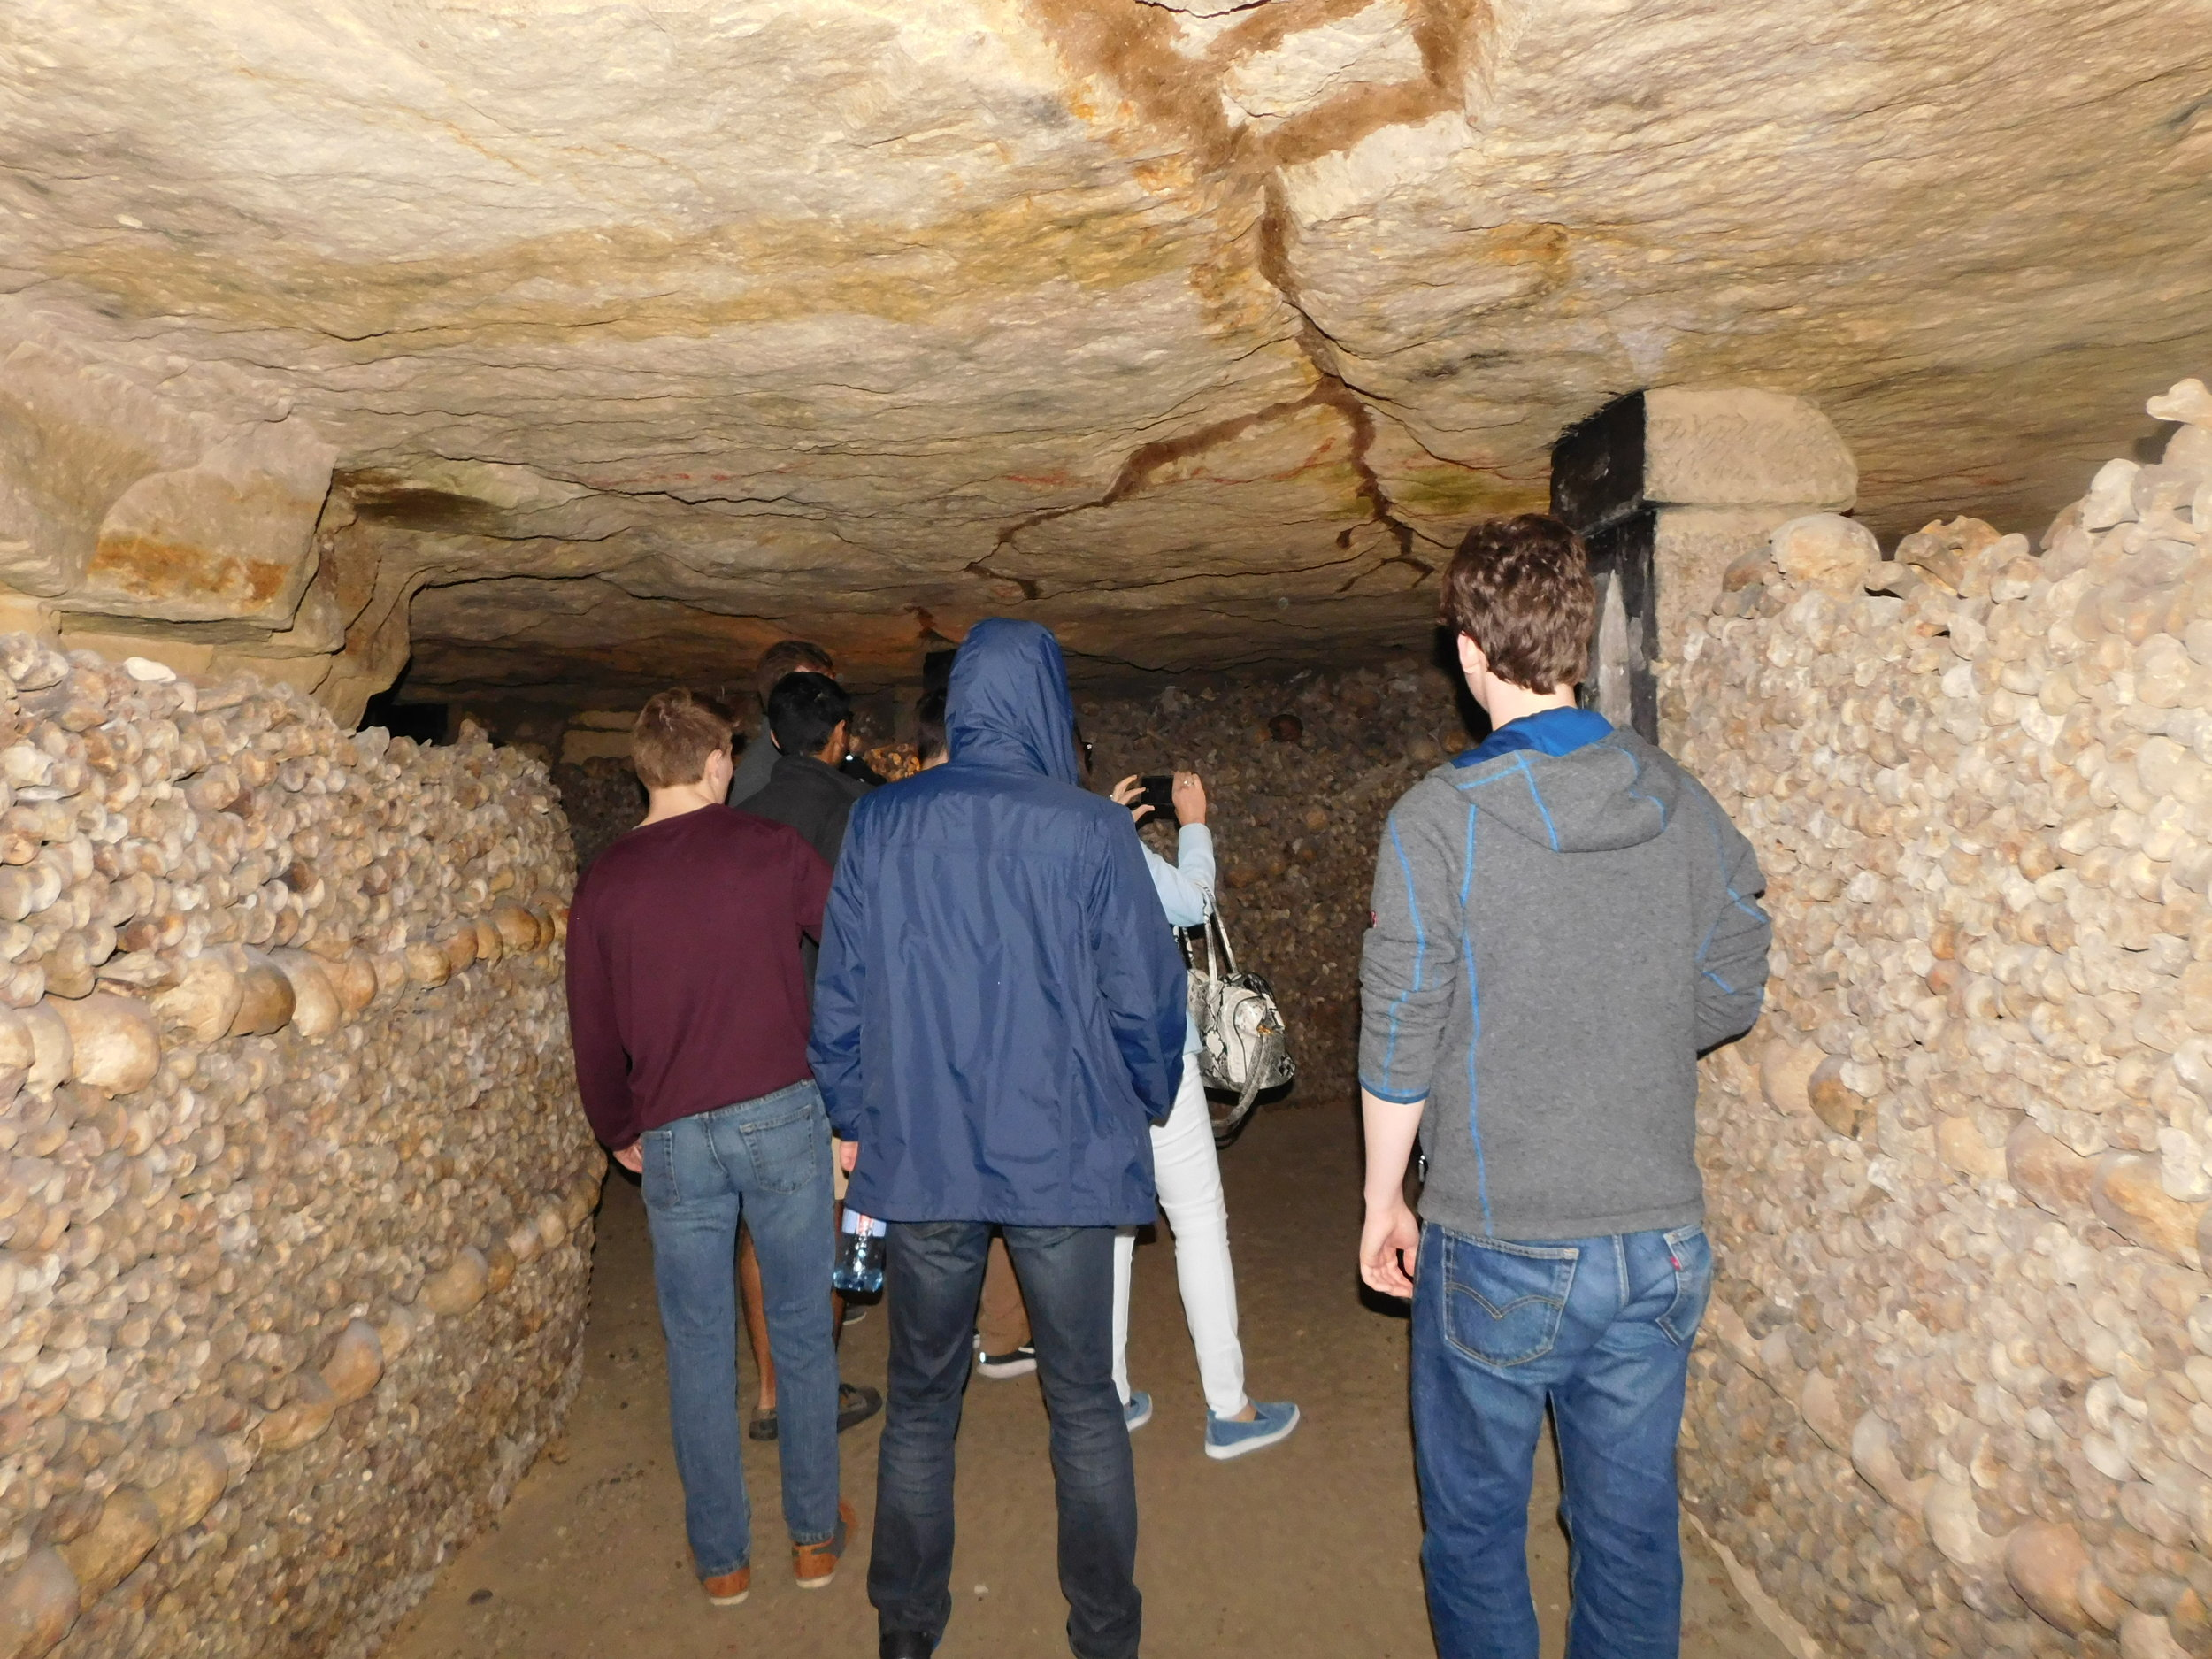 Visiting the Catacombs under the city of Paris